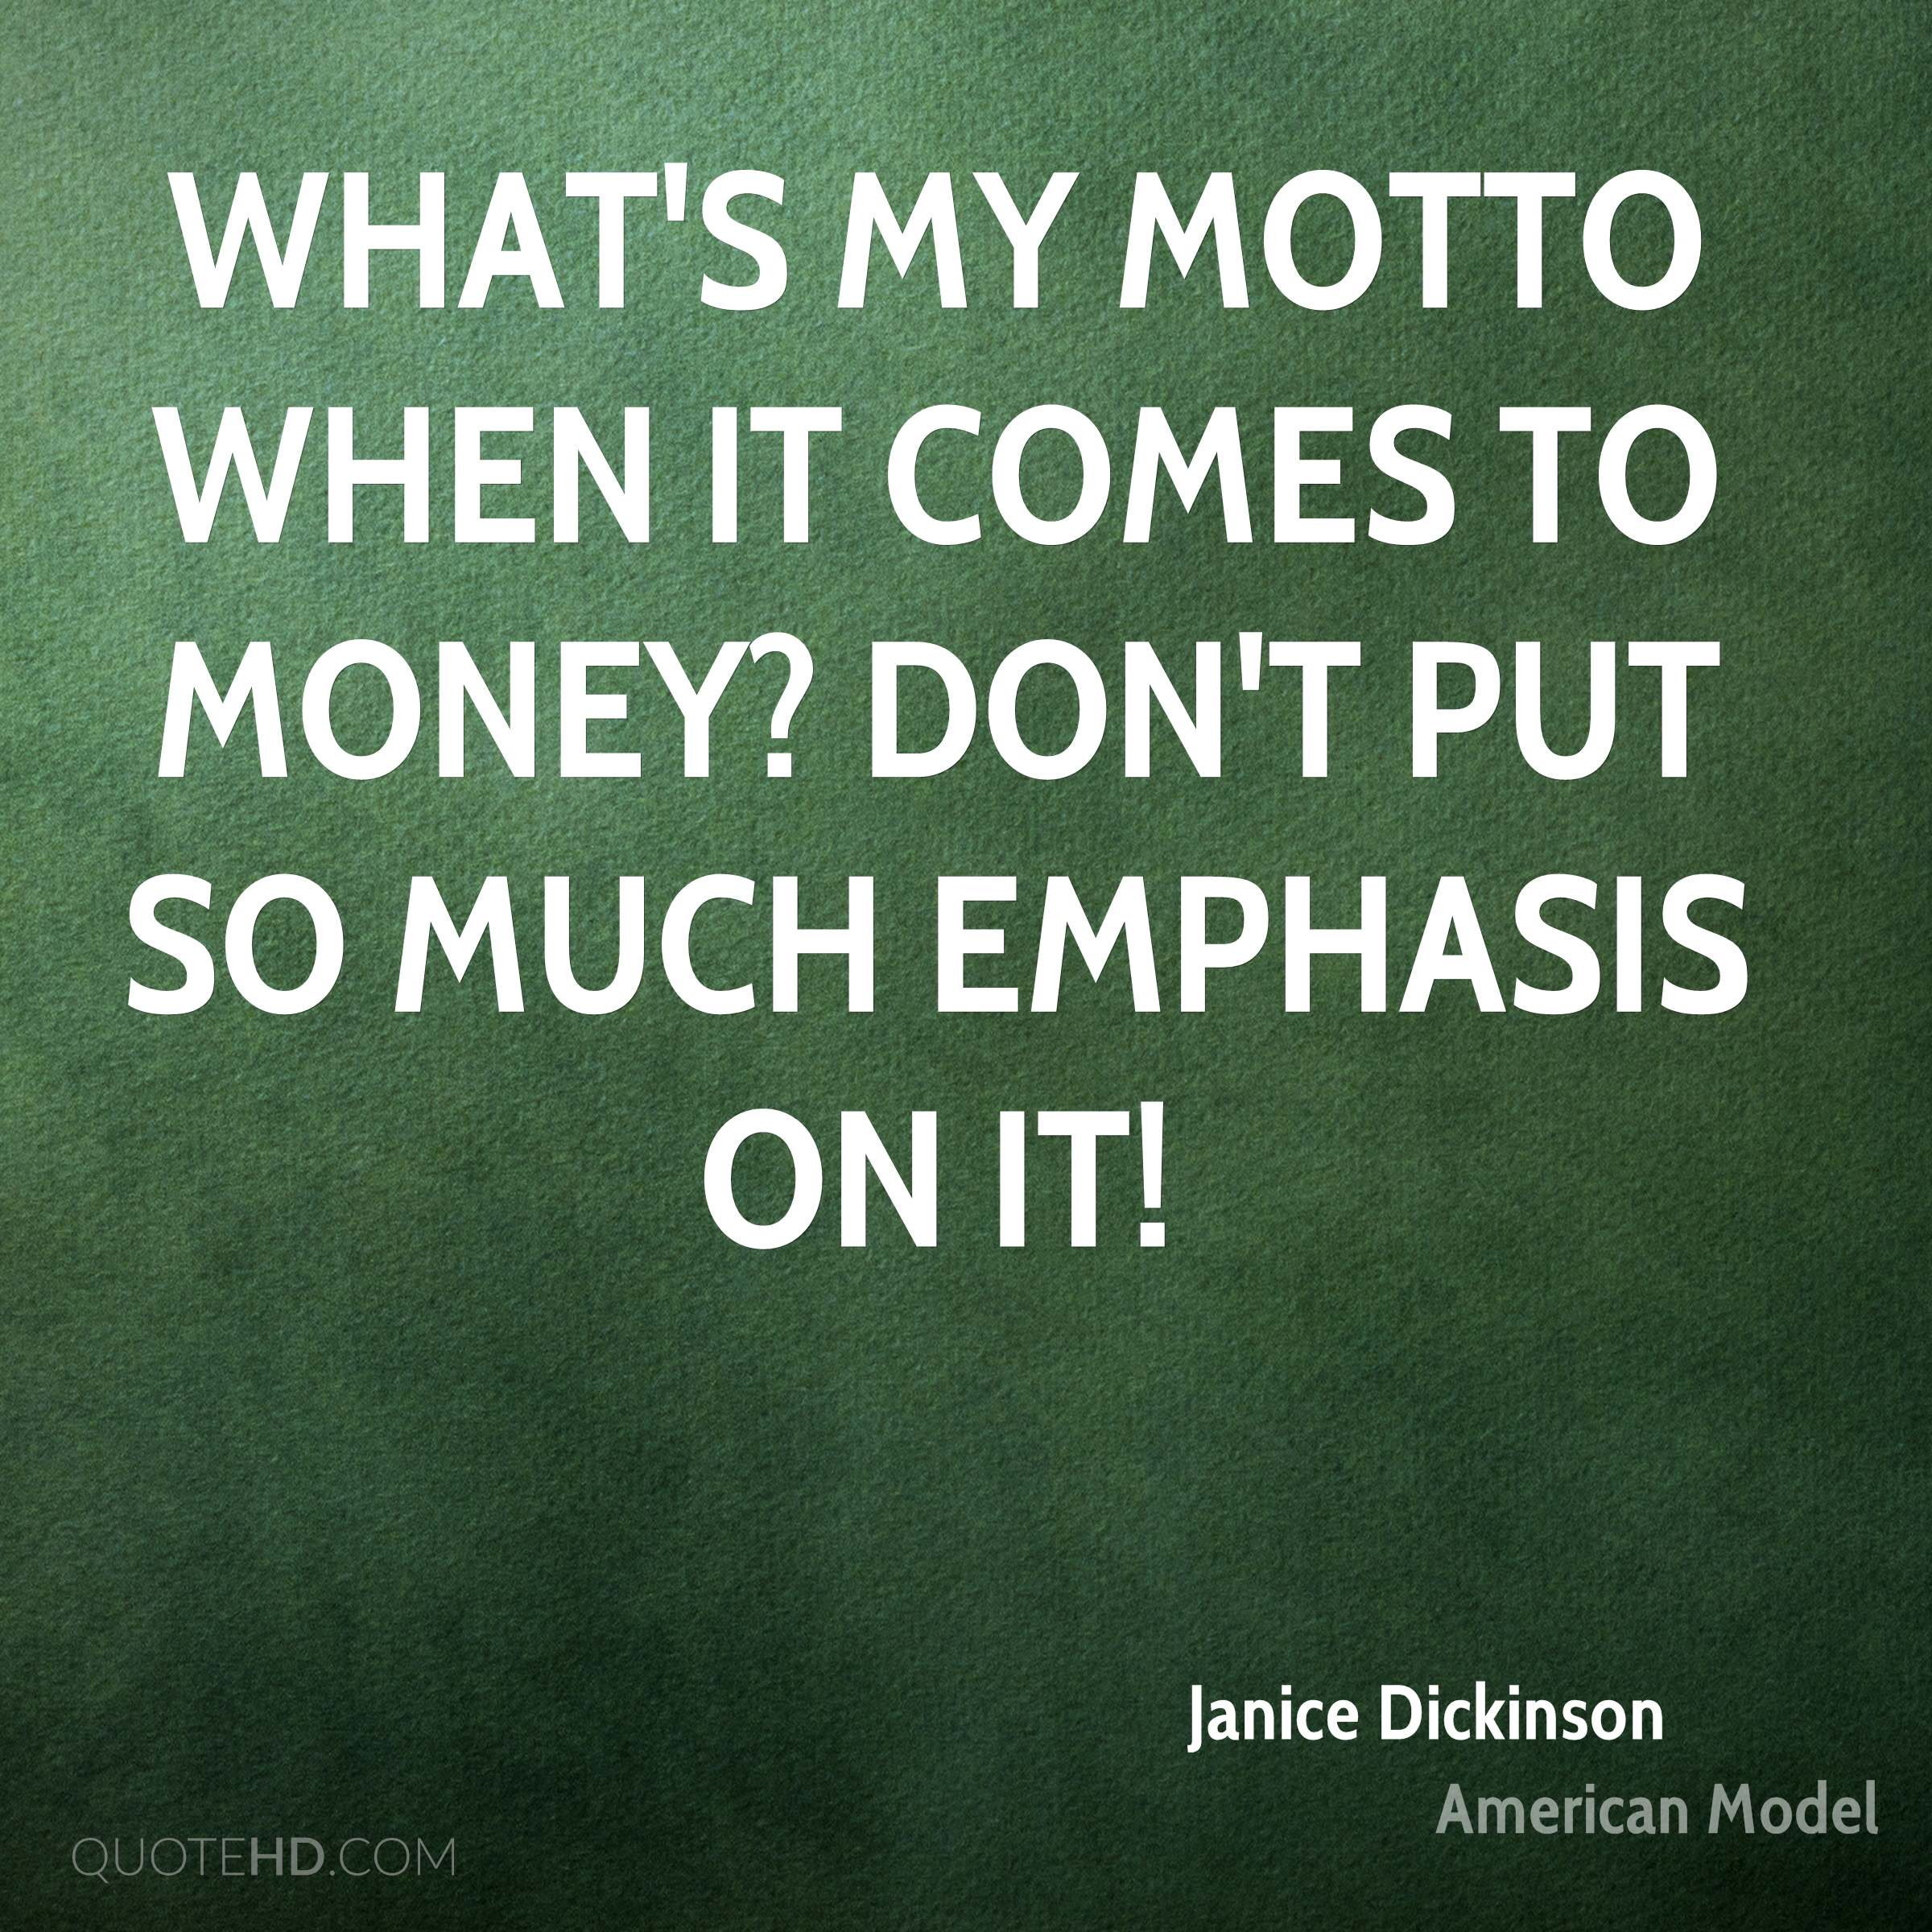 What's my motto when it comes to money? Don't put so much emphasis on it!